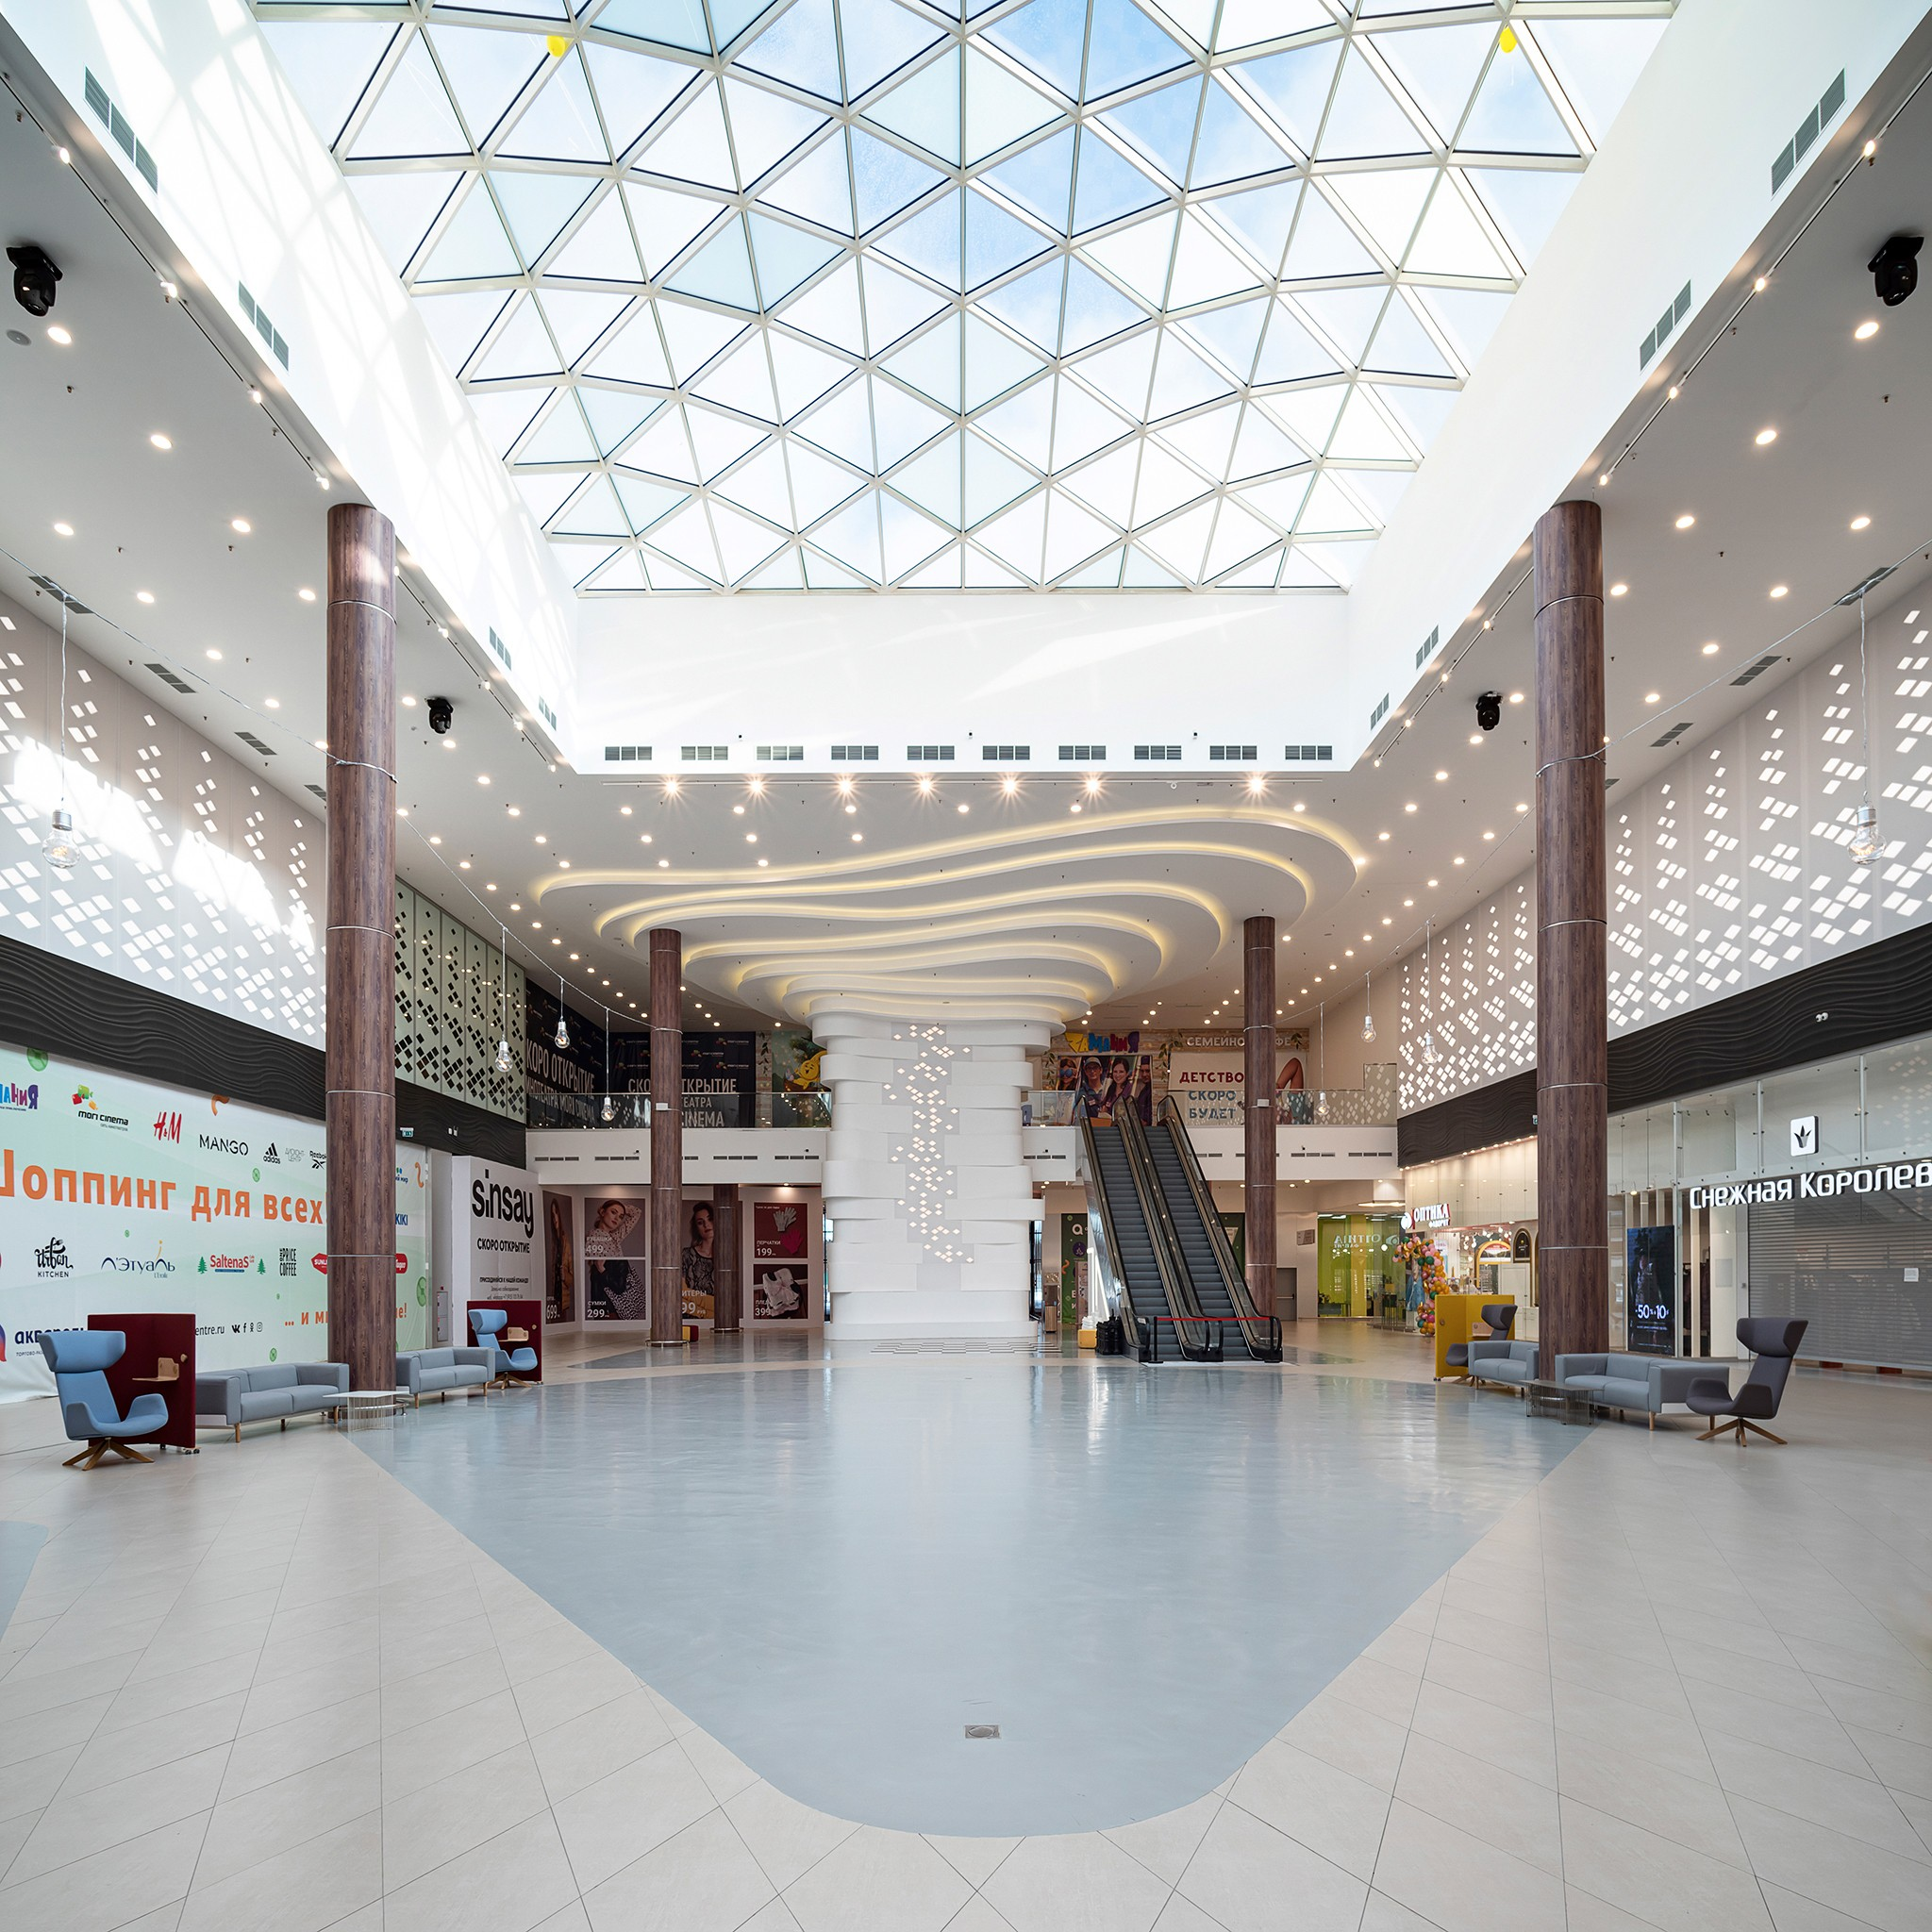 Recreation interior in a large shopping and entertainment center